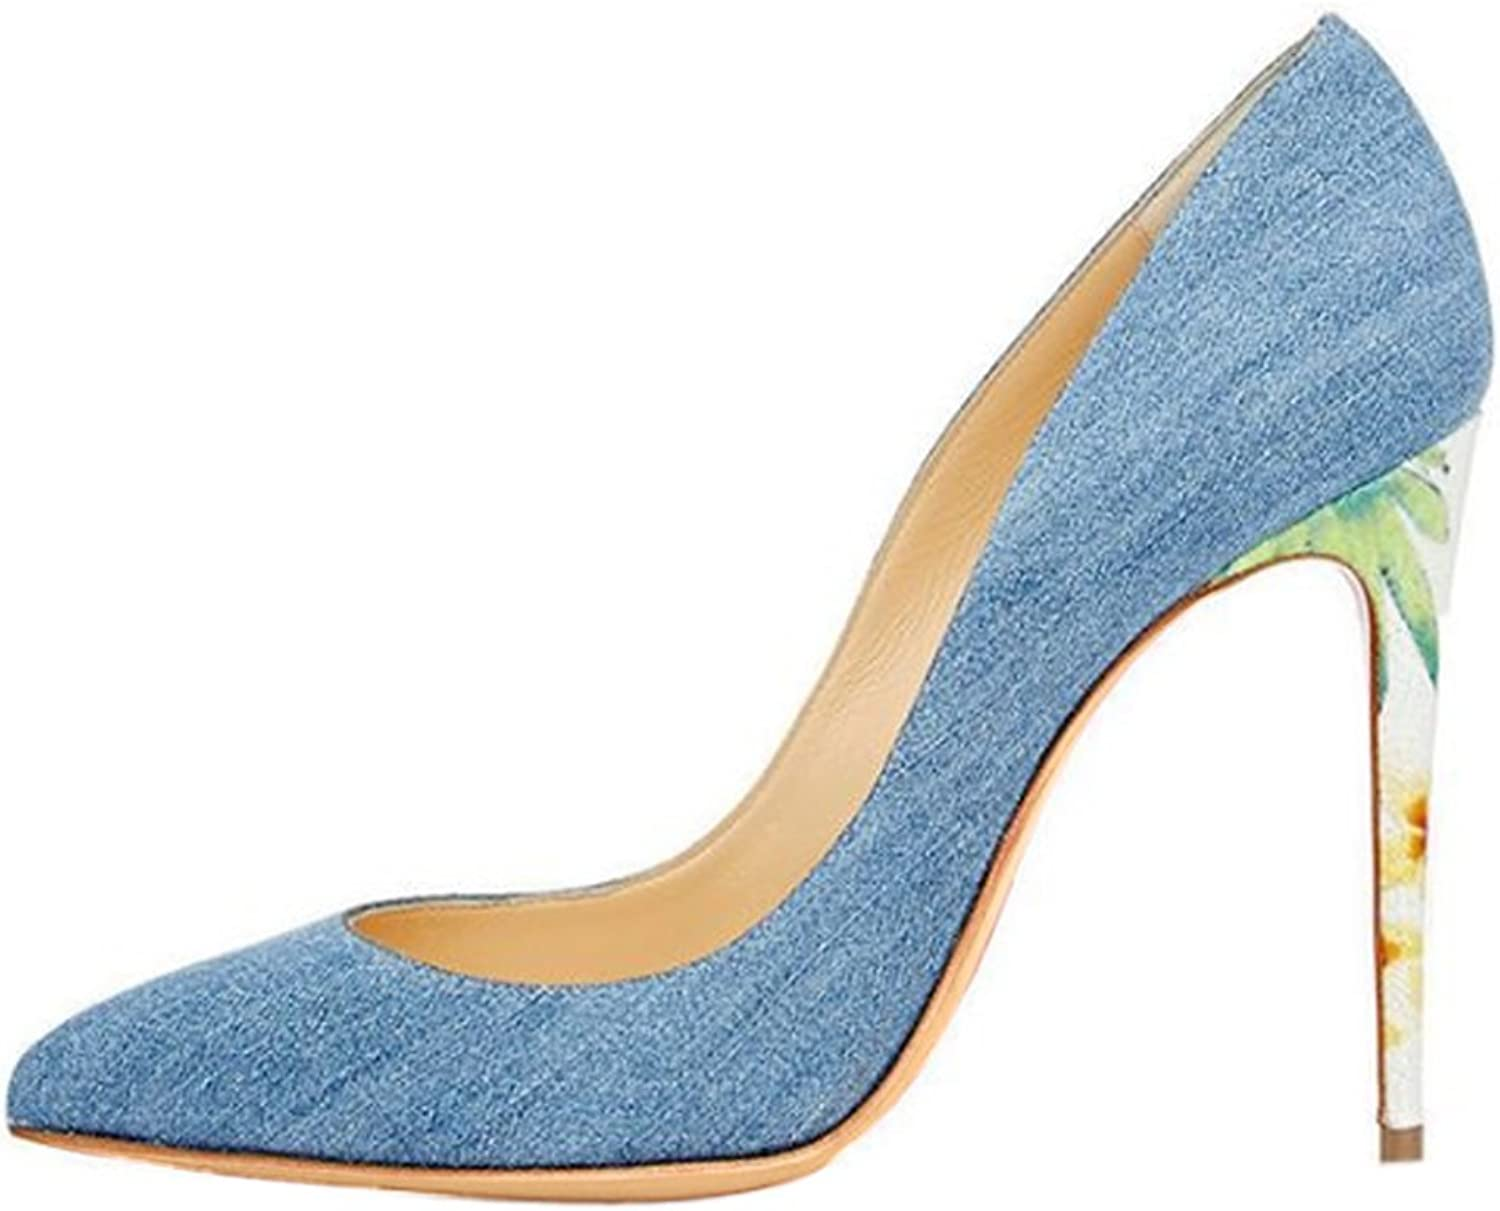 UMEXI Women's Pointed Toe Jeans bluee Sexy Slip-on Stiletto High Heel Pumps for Party